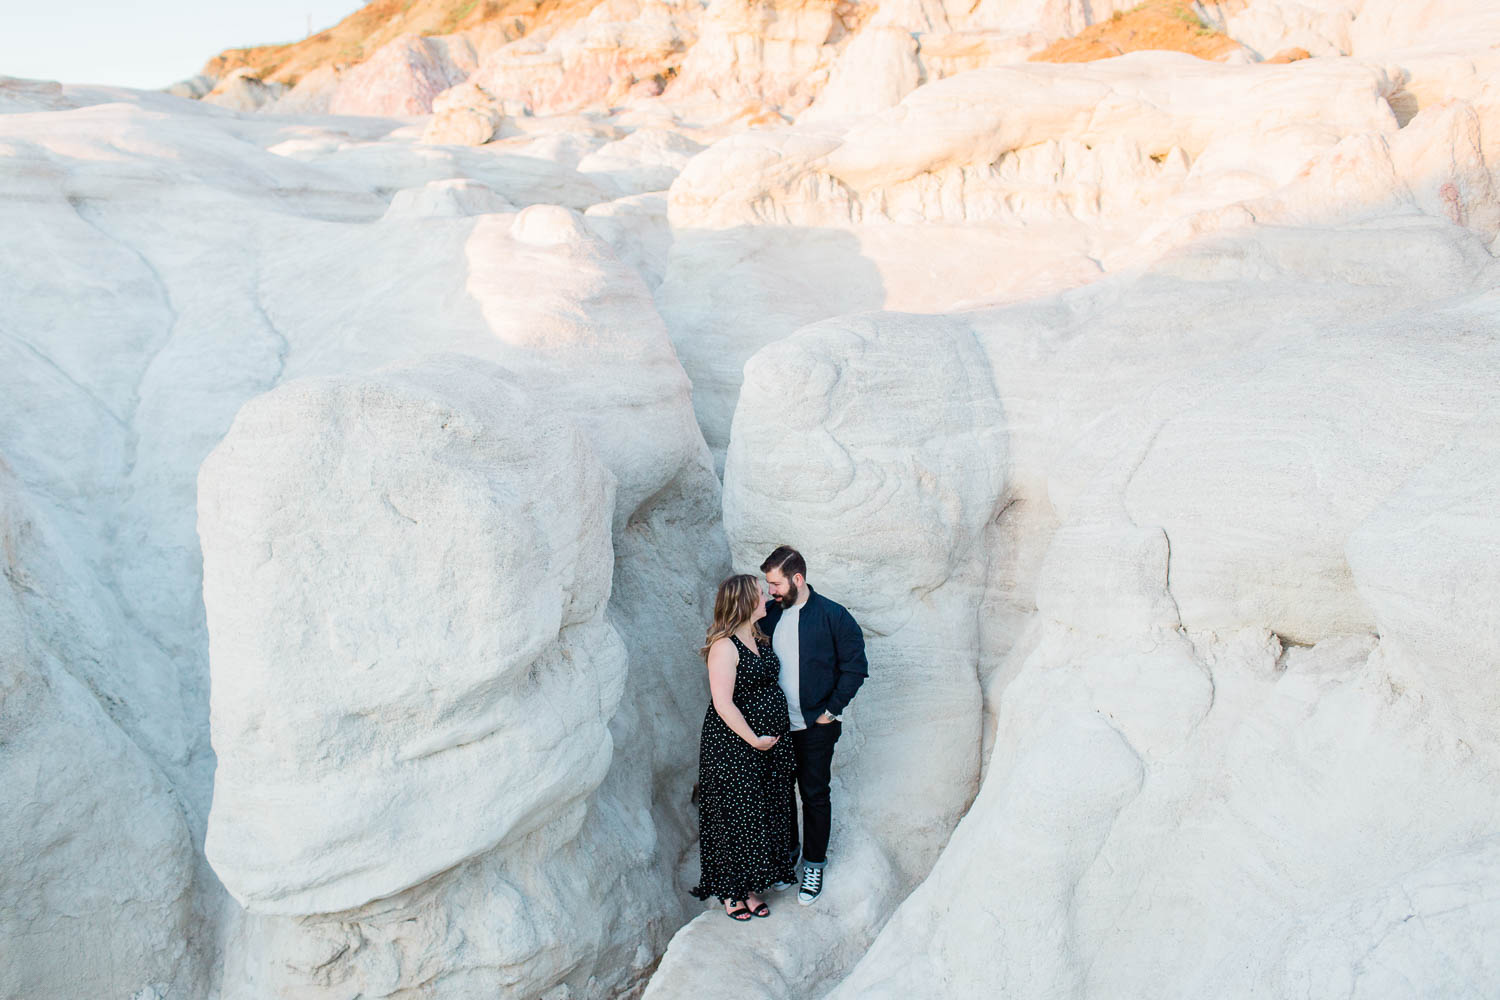 Colorado Maternity Photography Session in the Paint Mines